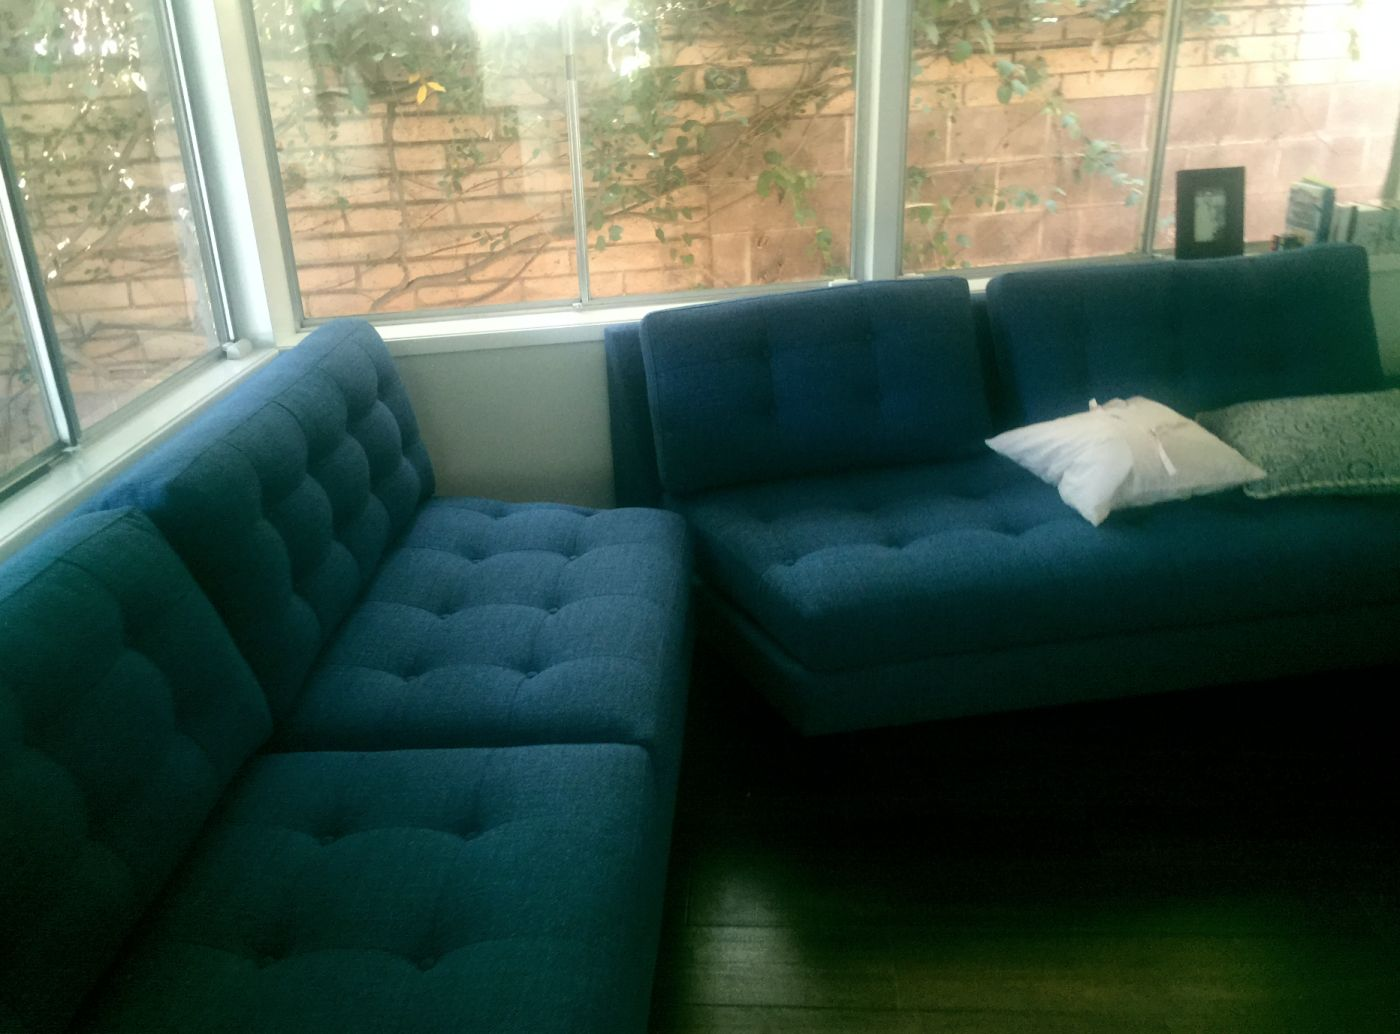 08-Couch-1.jpg